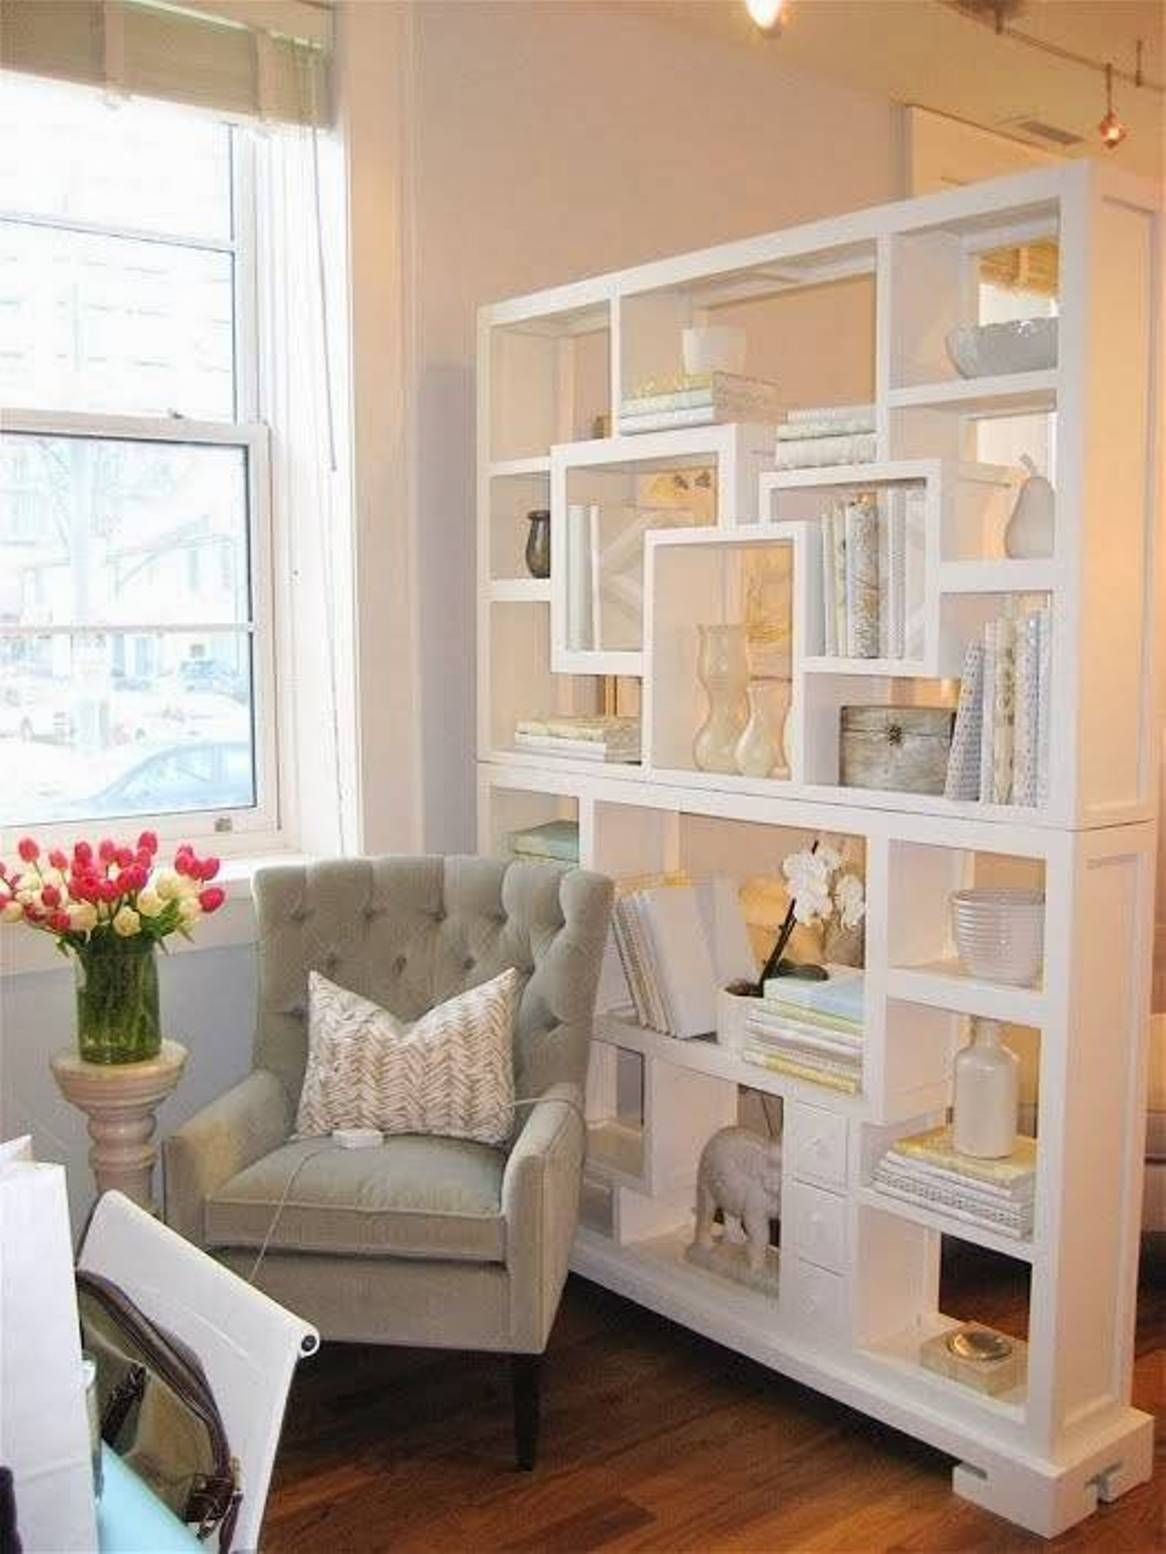 Room Design Free: Freestanding Bookcase Living Room Divider : Living Room